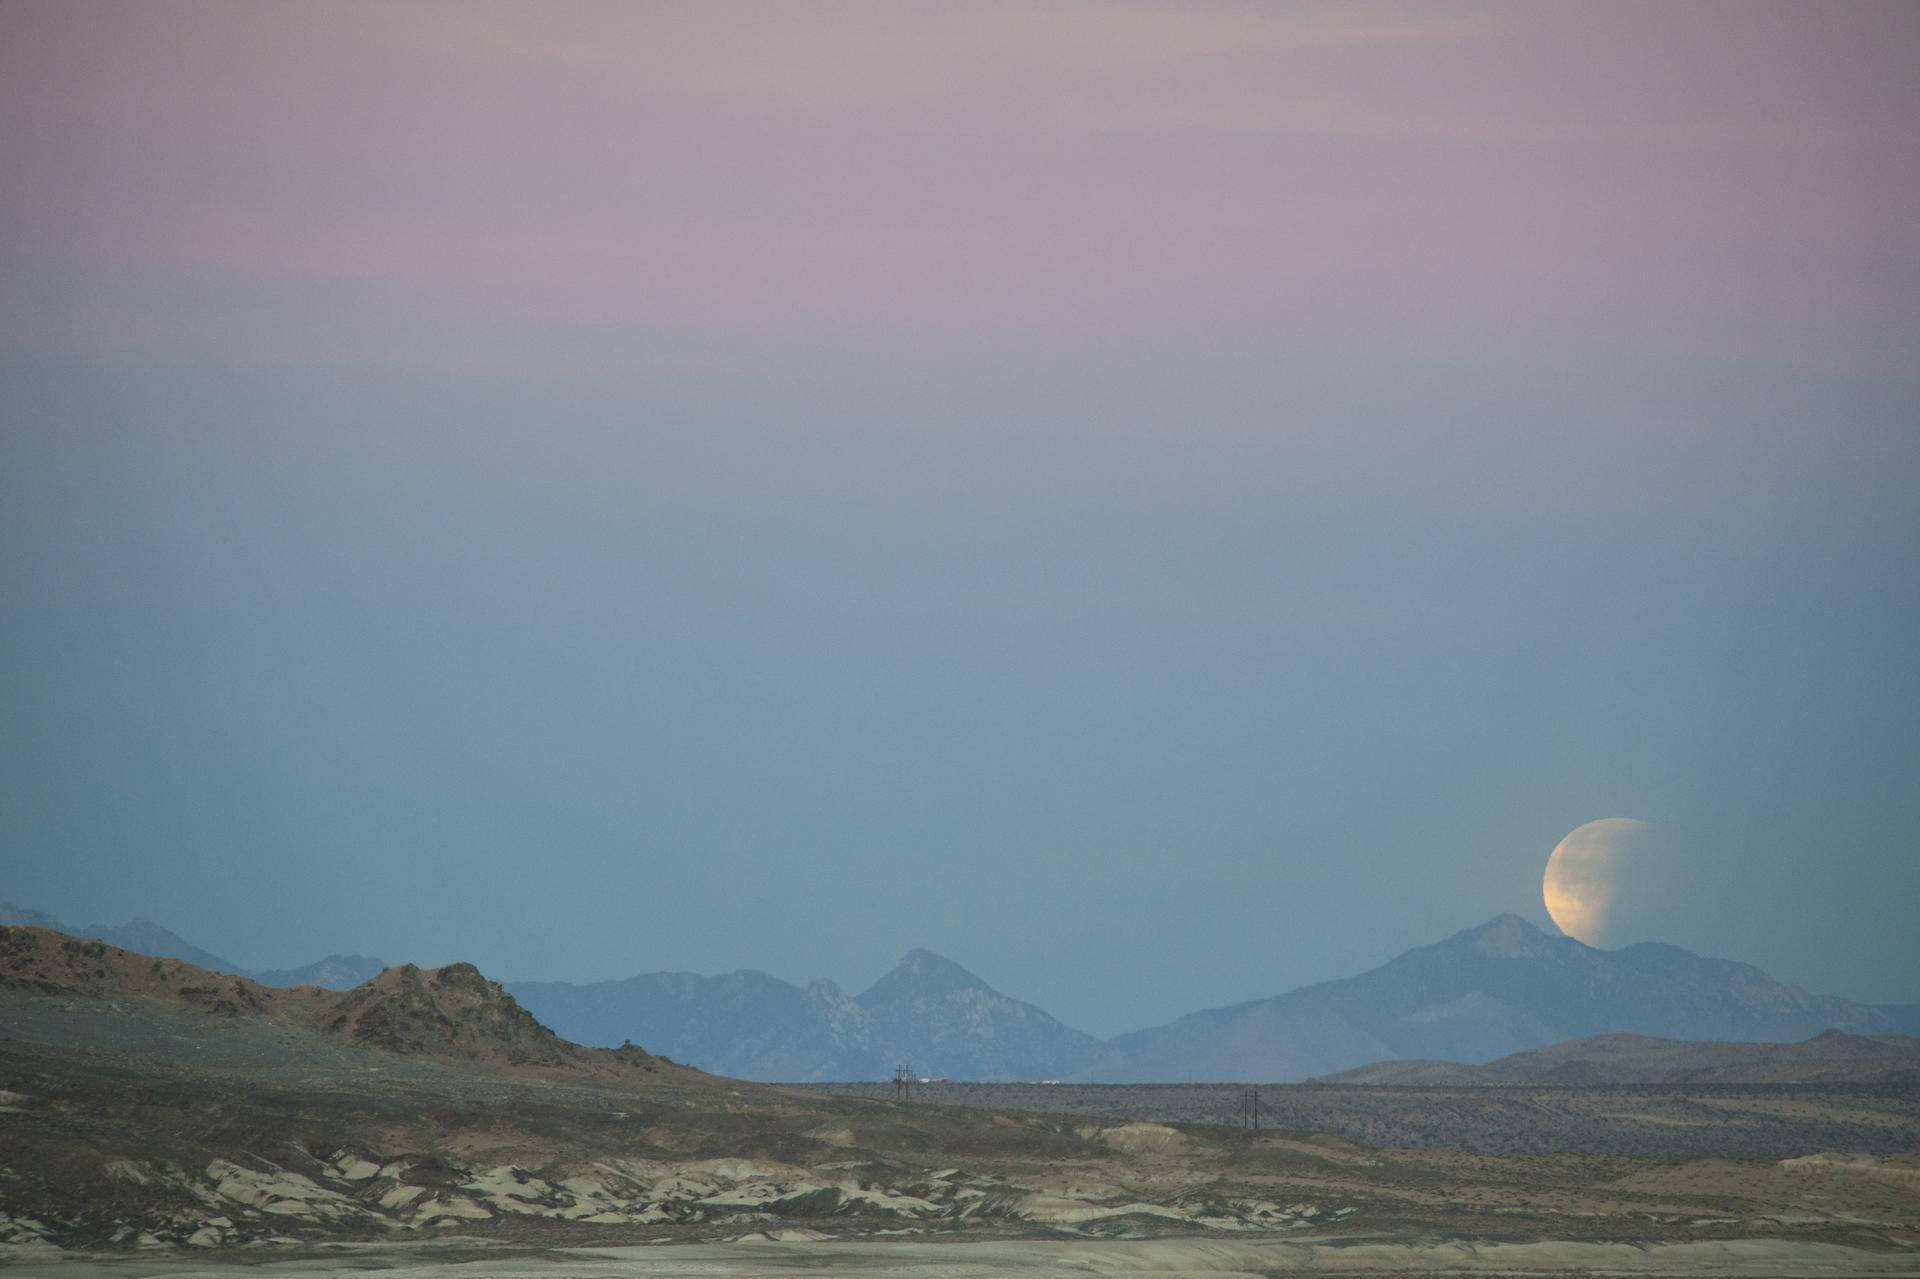 moon setting over desert landscape